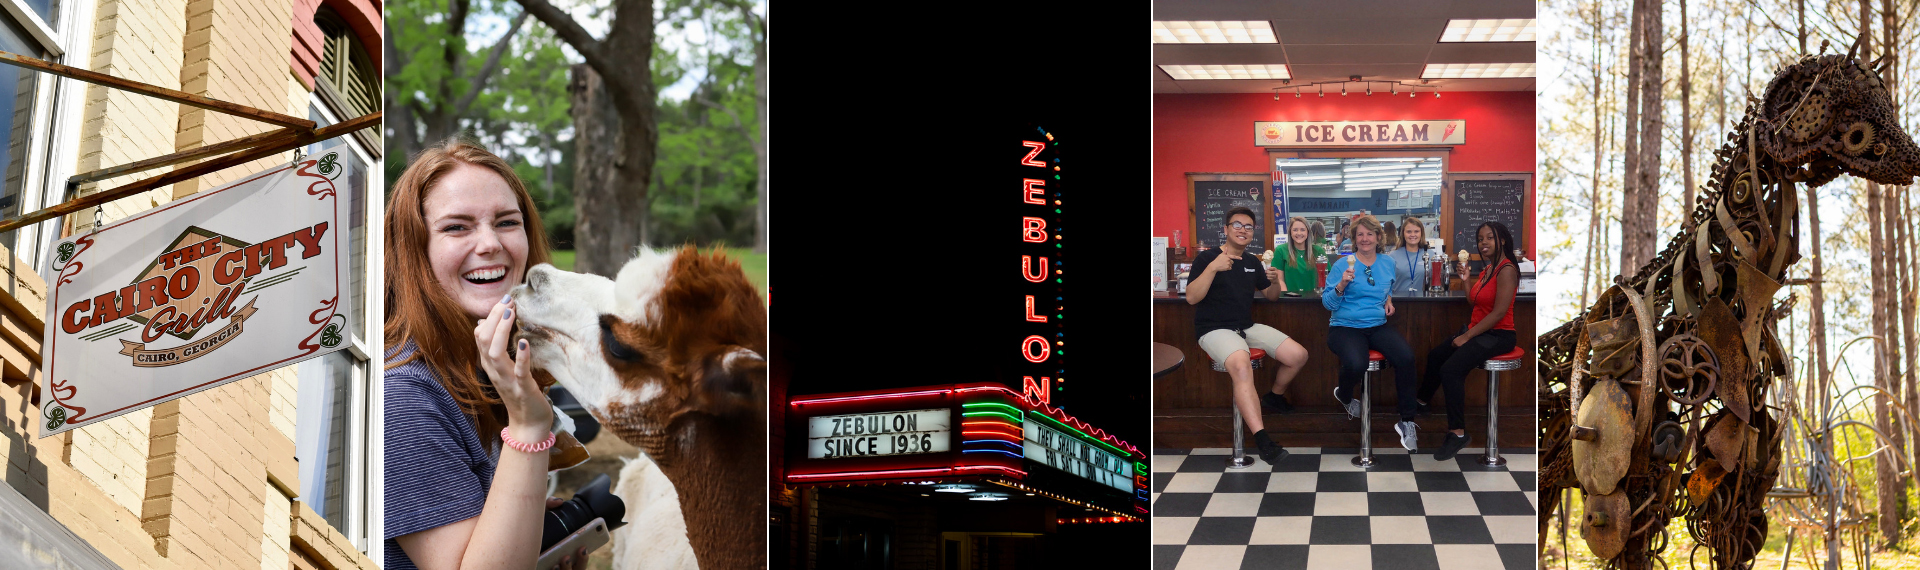 The Cairo City Grill sign hangs off a wall downtown; a student laughs feeding a llama; Zebulon Theatre marquee sign at night; students and community members smile in front of an ice cream counter; an iron horse statue